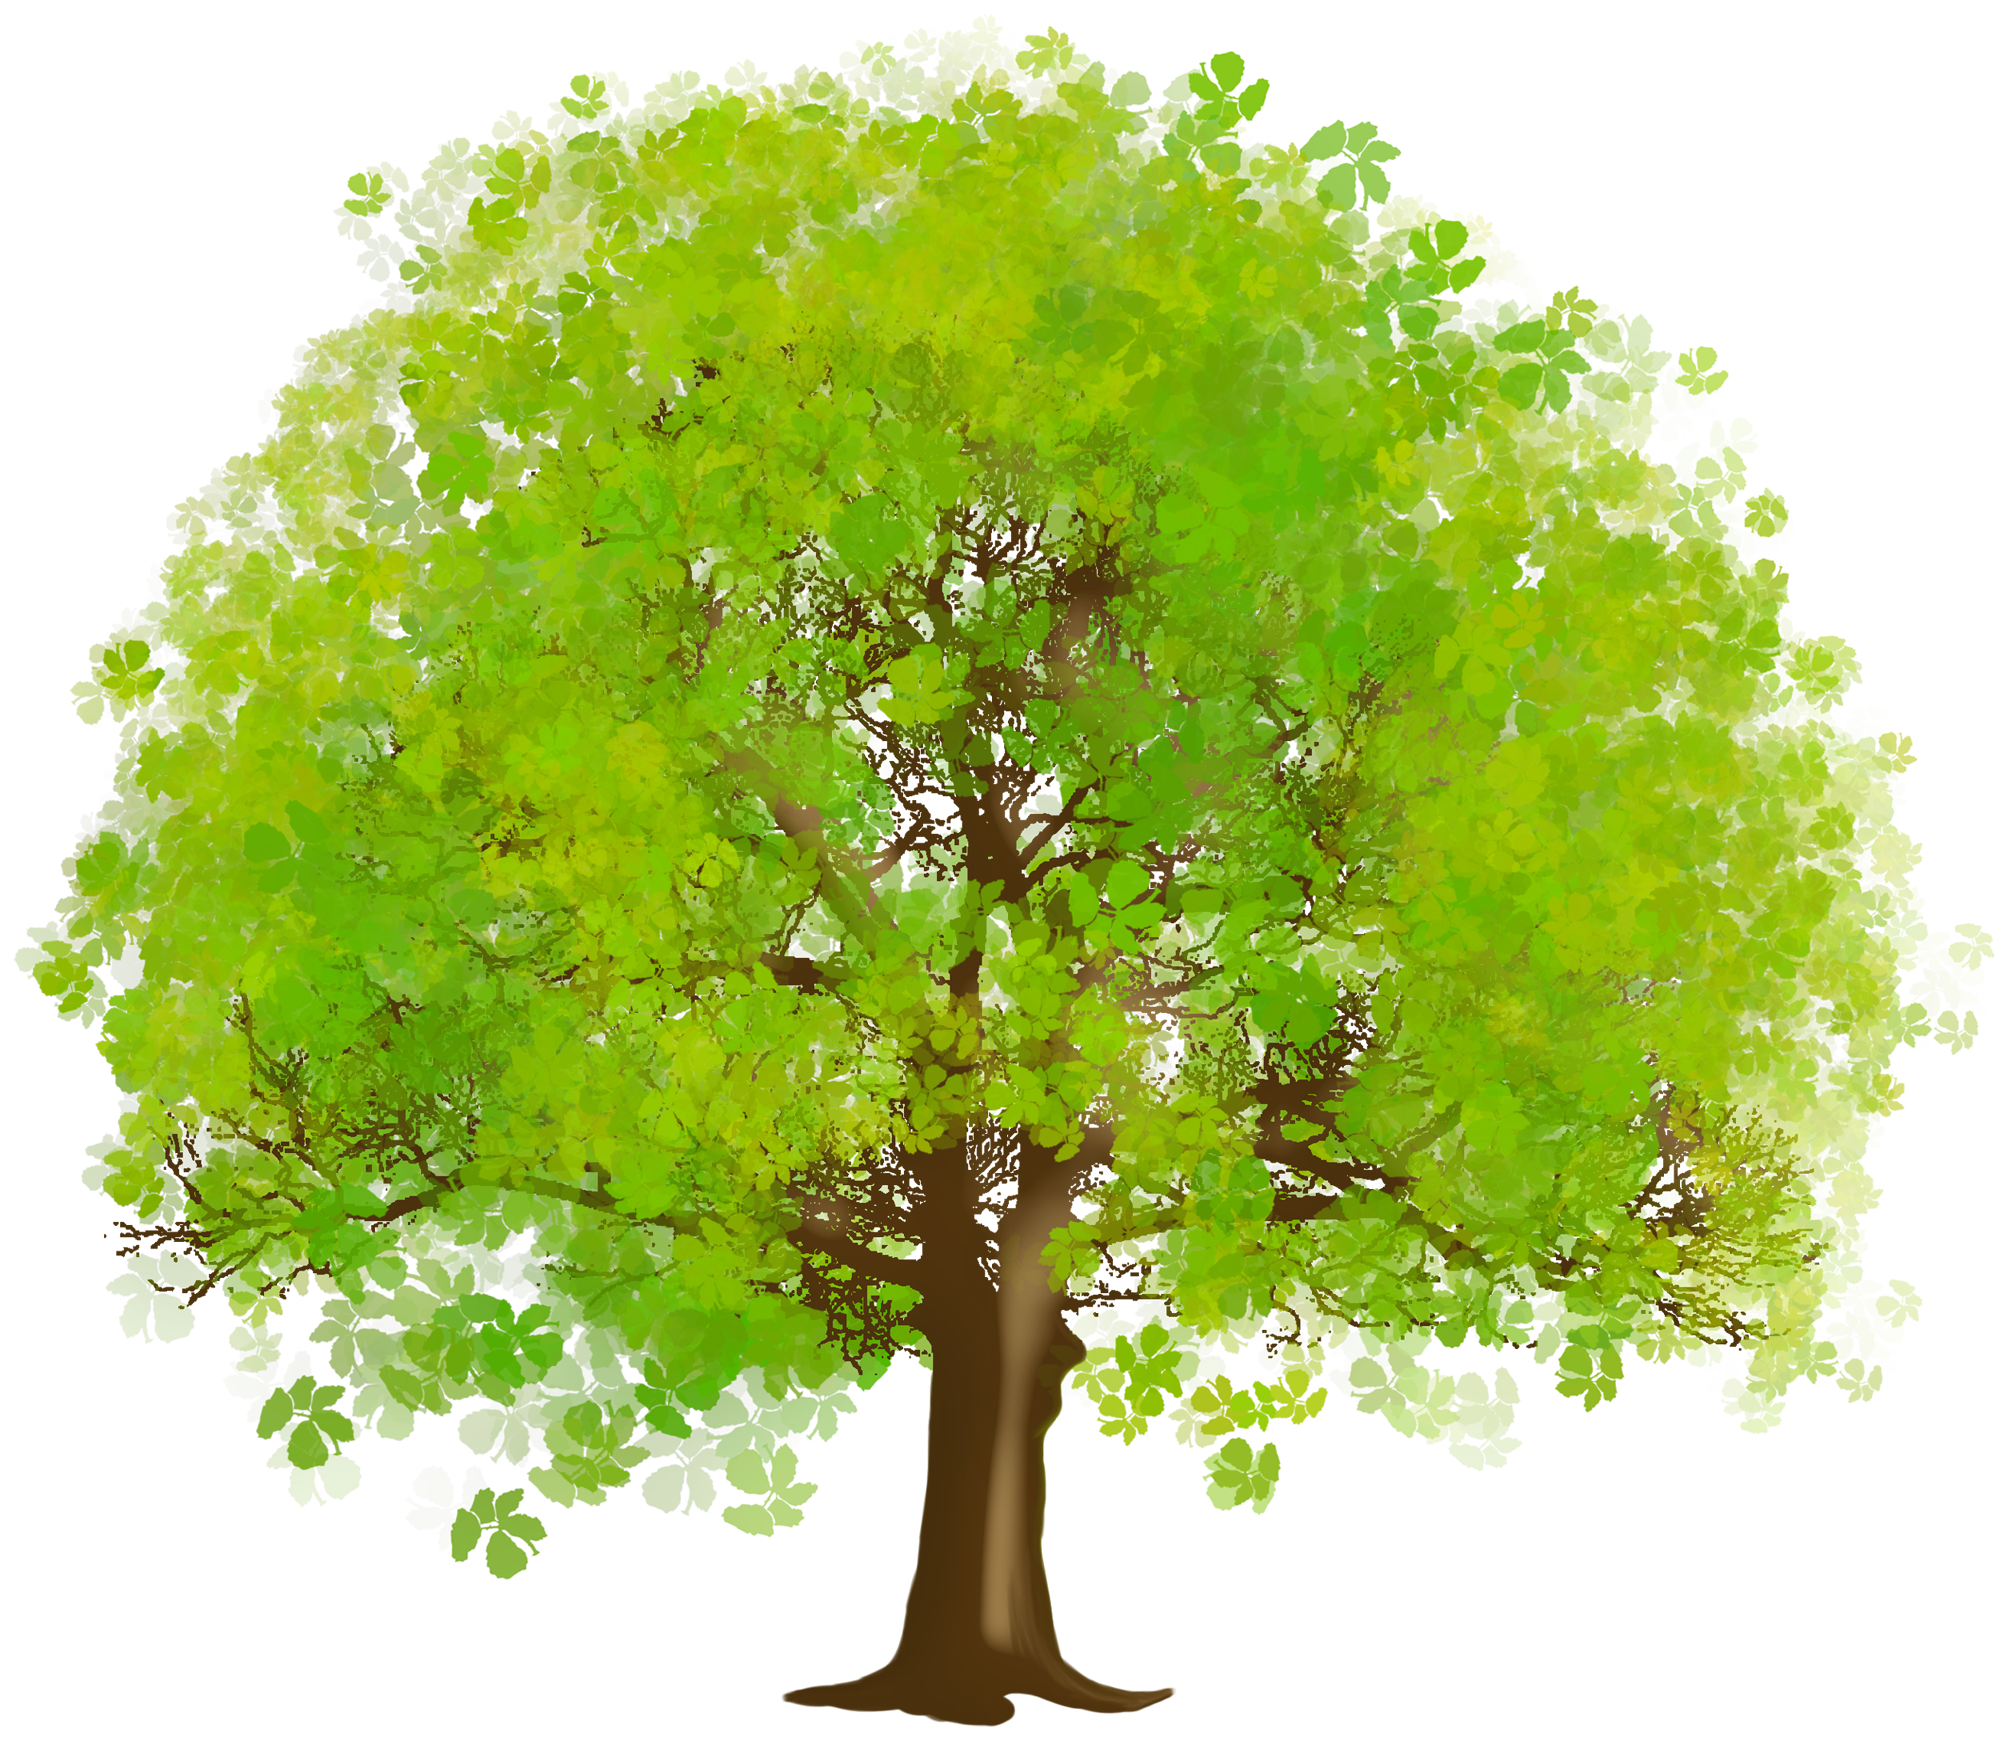 Family tree vector clipart svg black and white library Large Green Tree PNG Clipart | Illustrations | Pinterest | Clipart ... svg black and white library